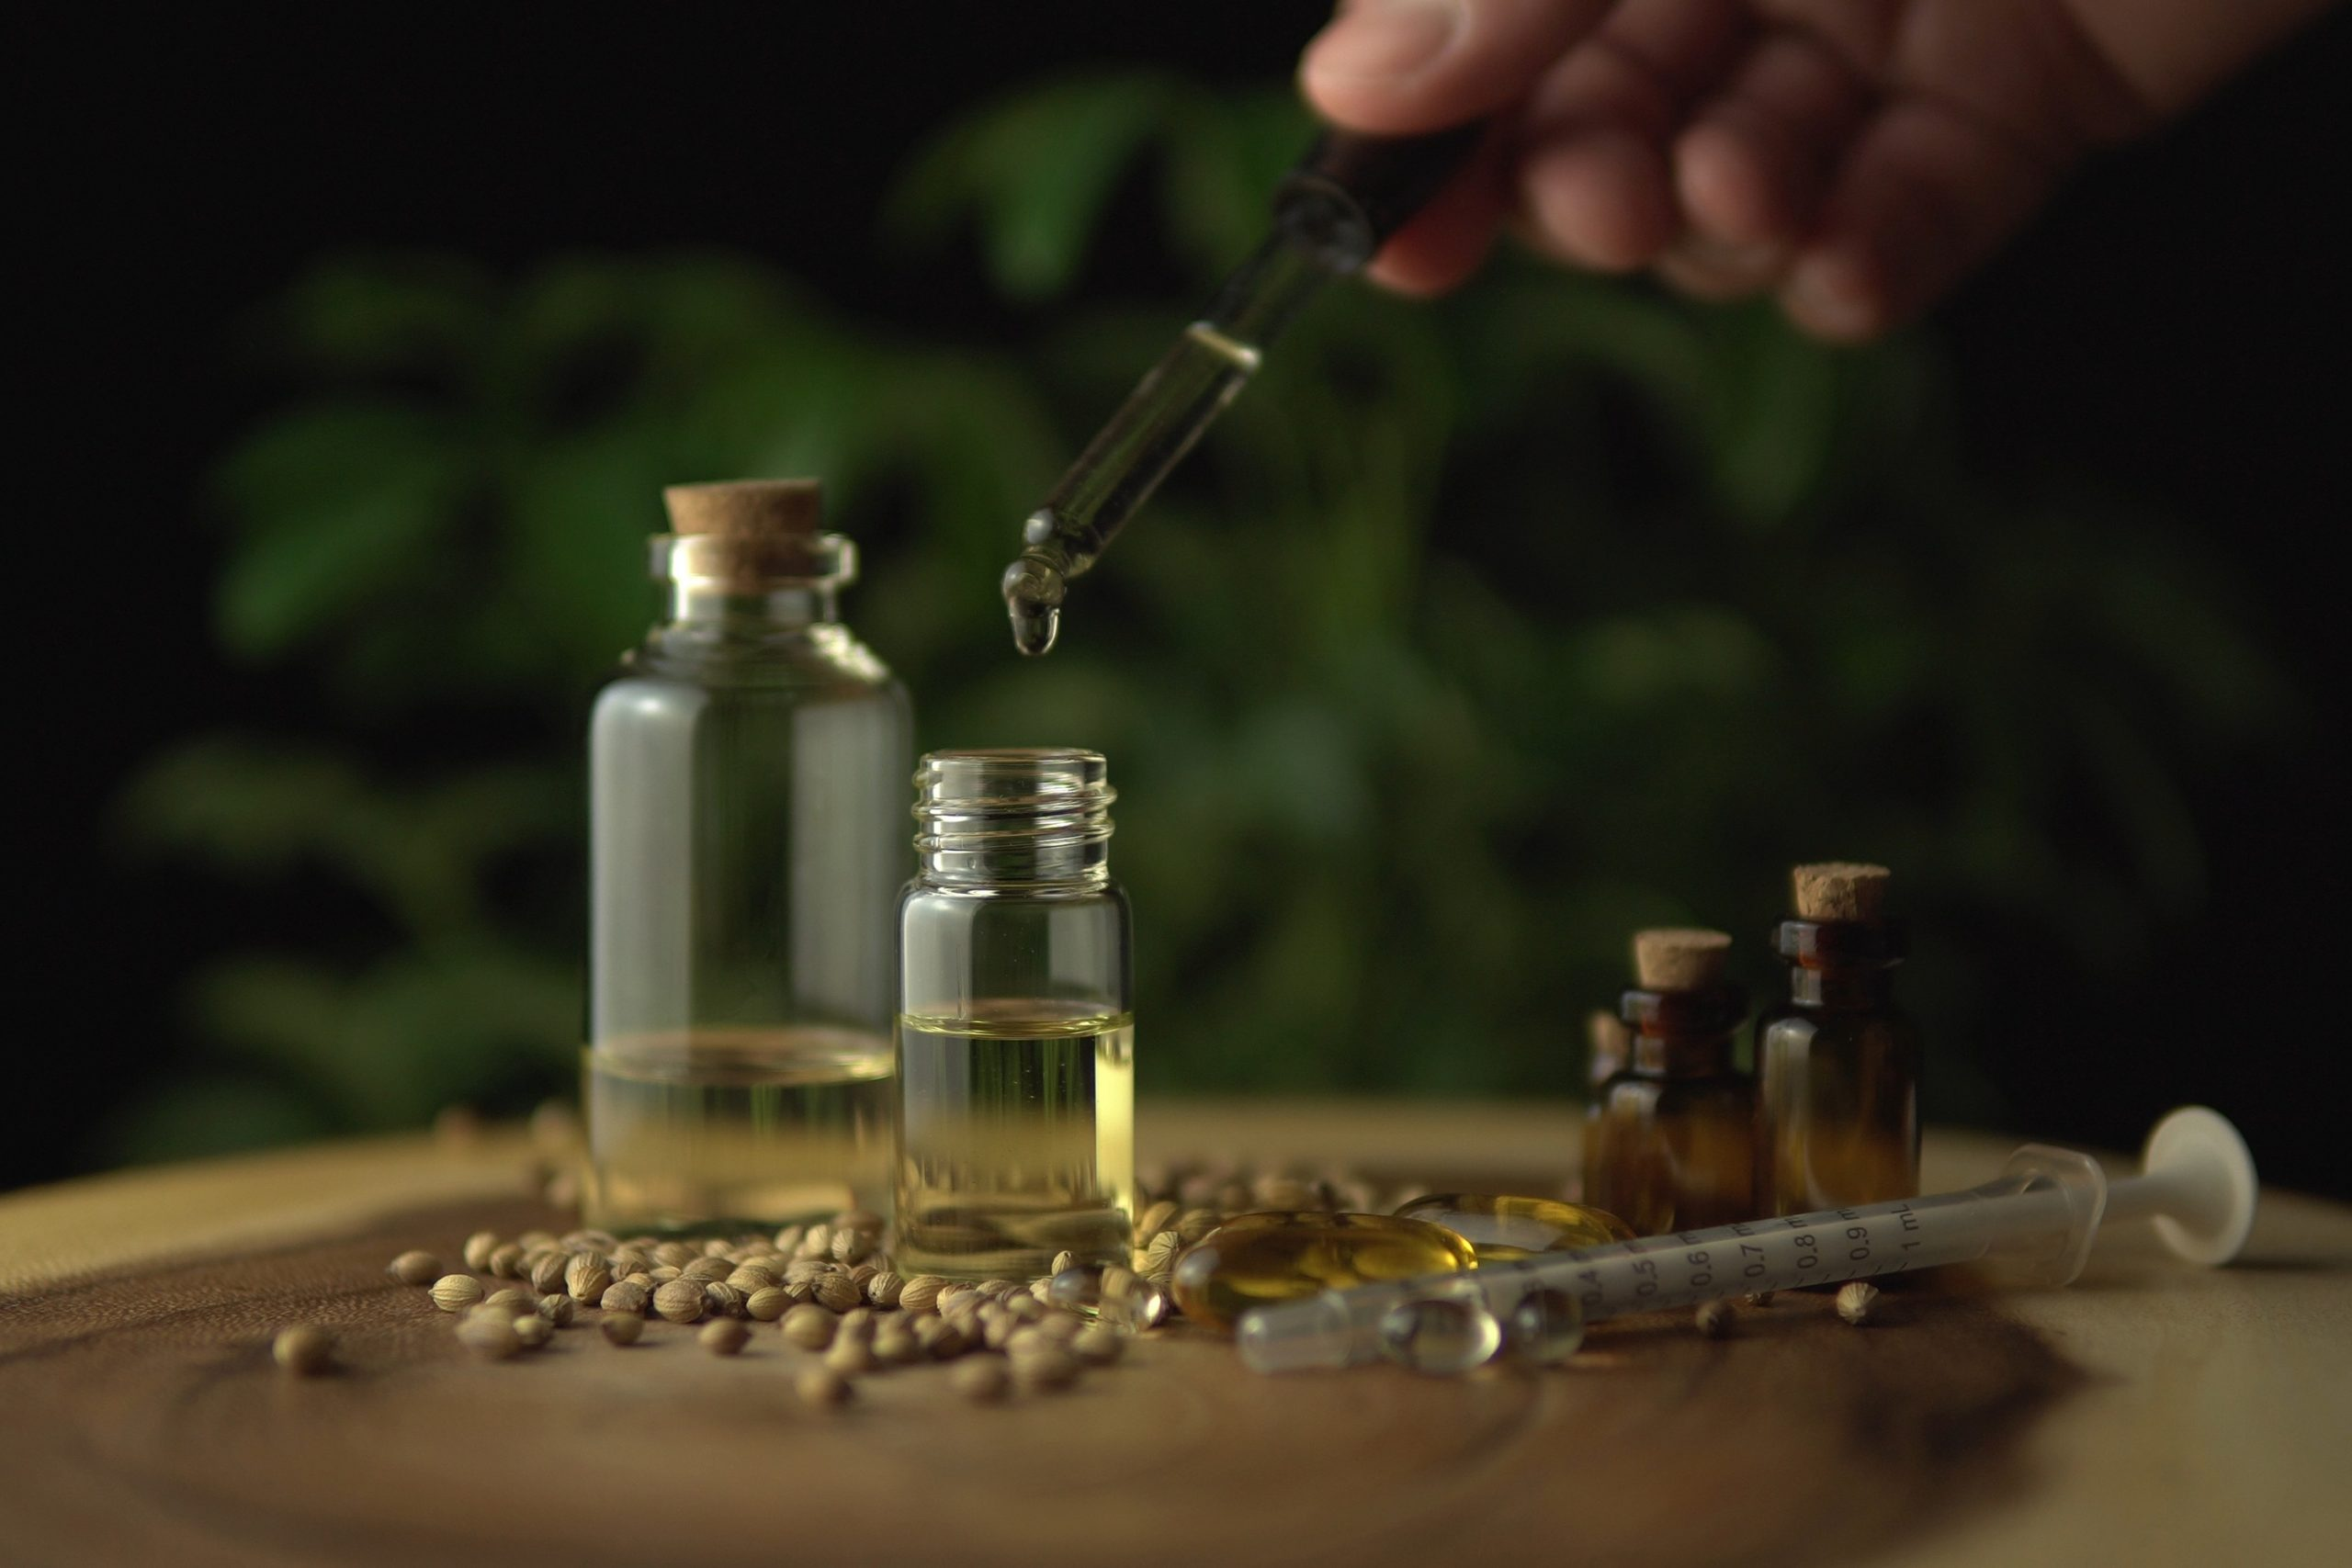 How to make CBD oil: A Beginner's Guide